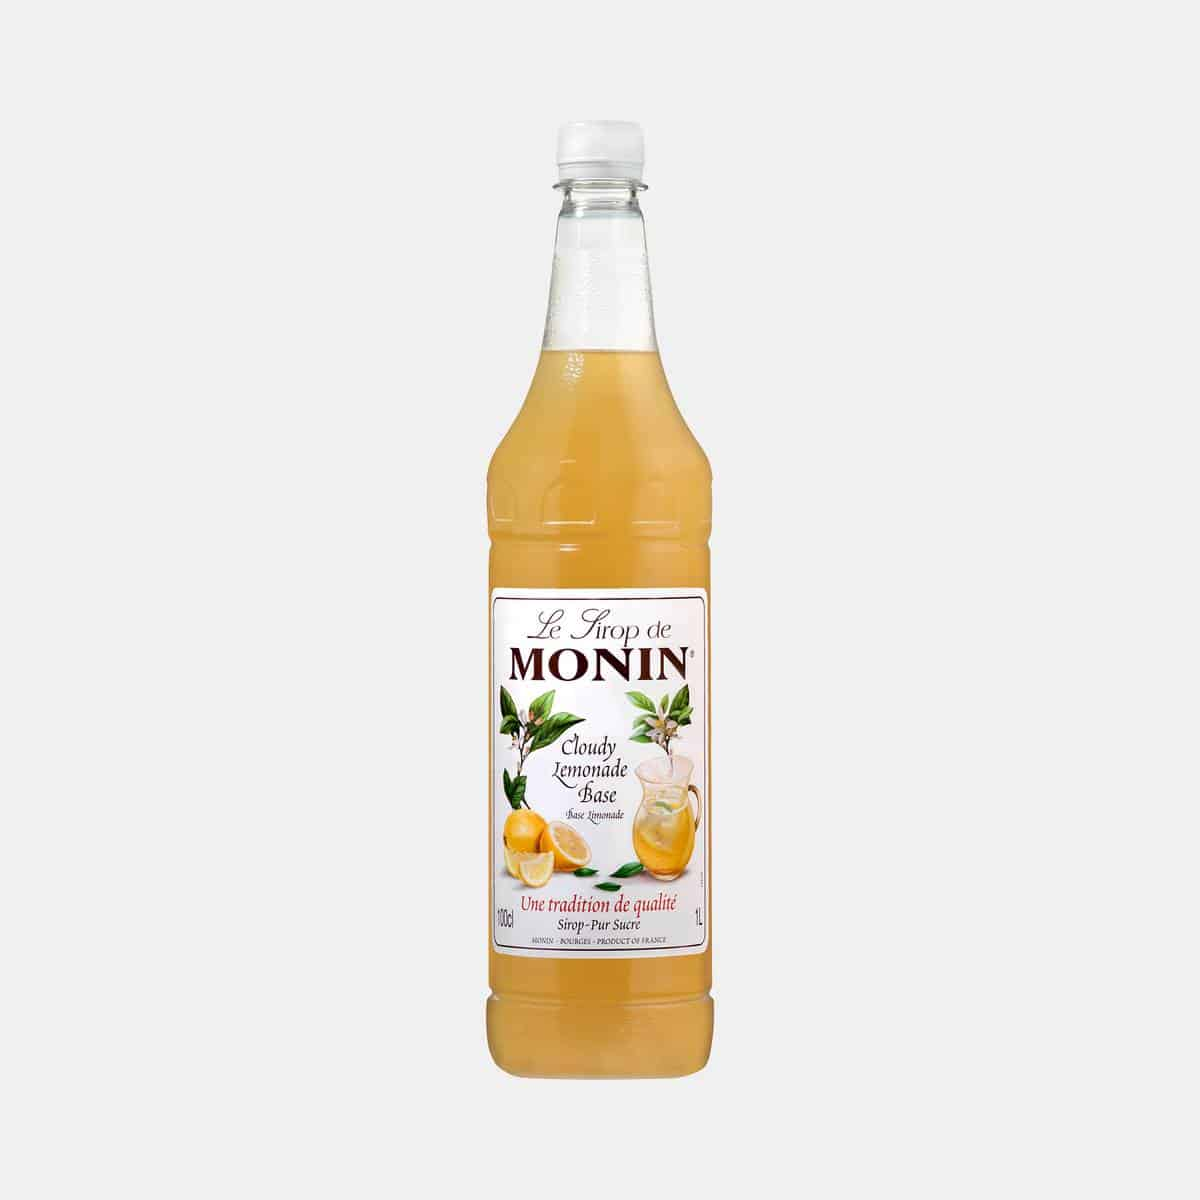 Monin Cloudy Lemonade Base Syrup 1 Liter PET Bottle